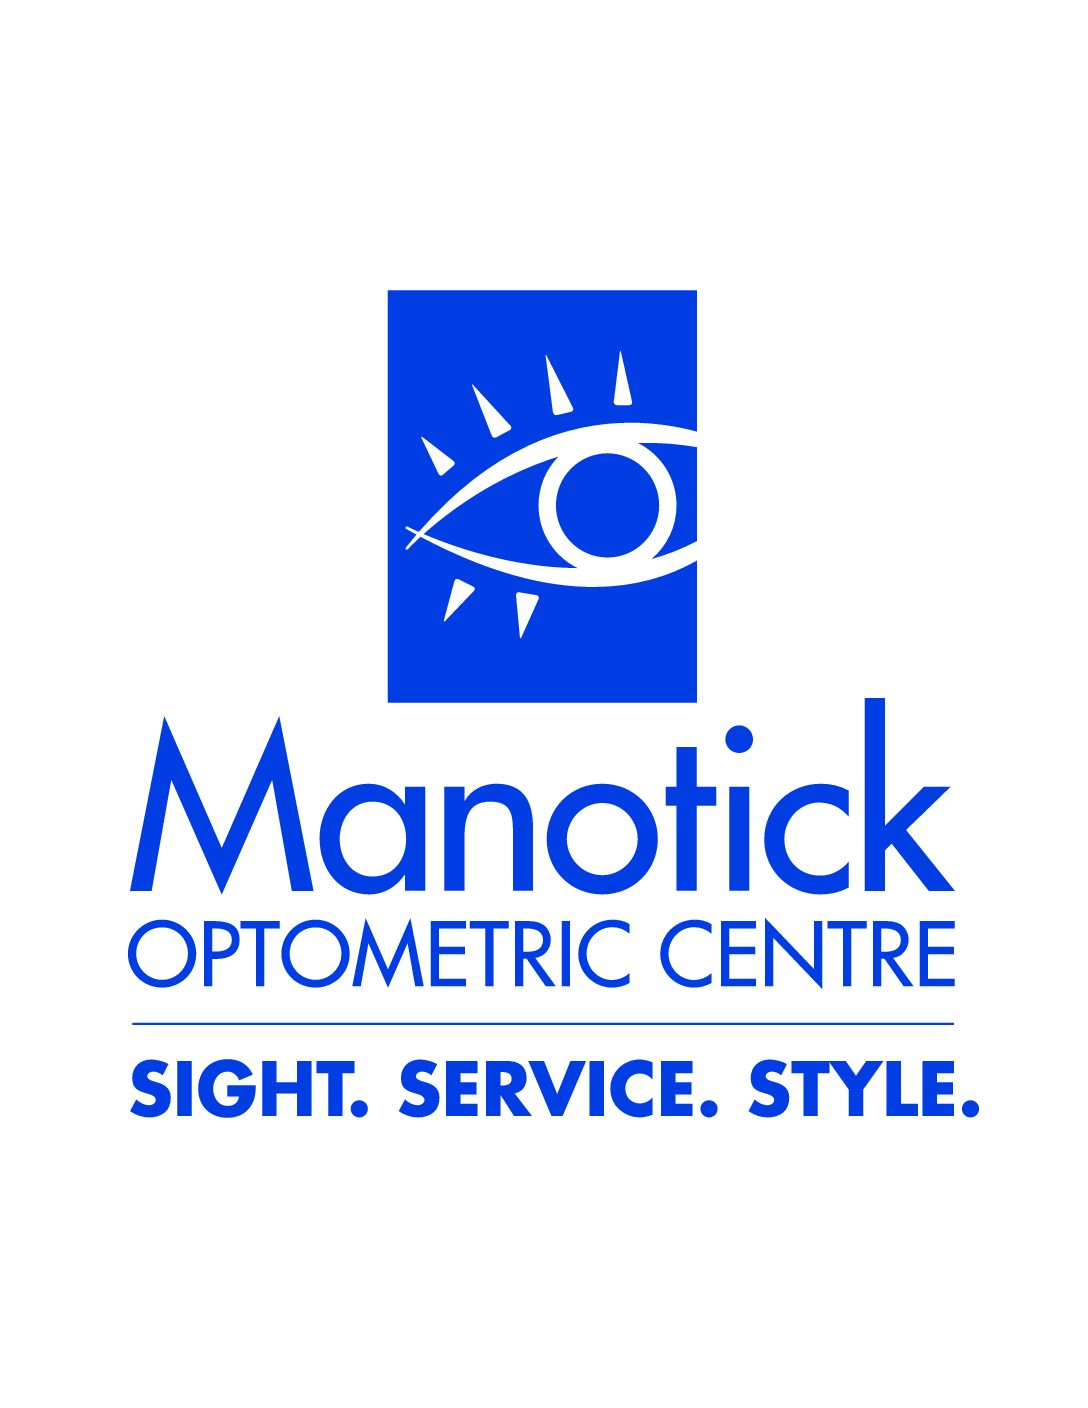 Manotick Optometric Centre logo - Business in Manotick